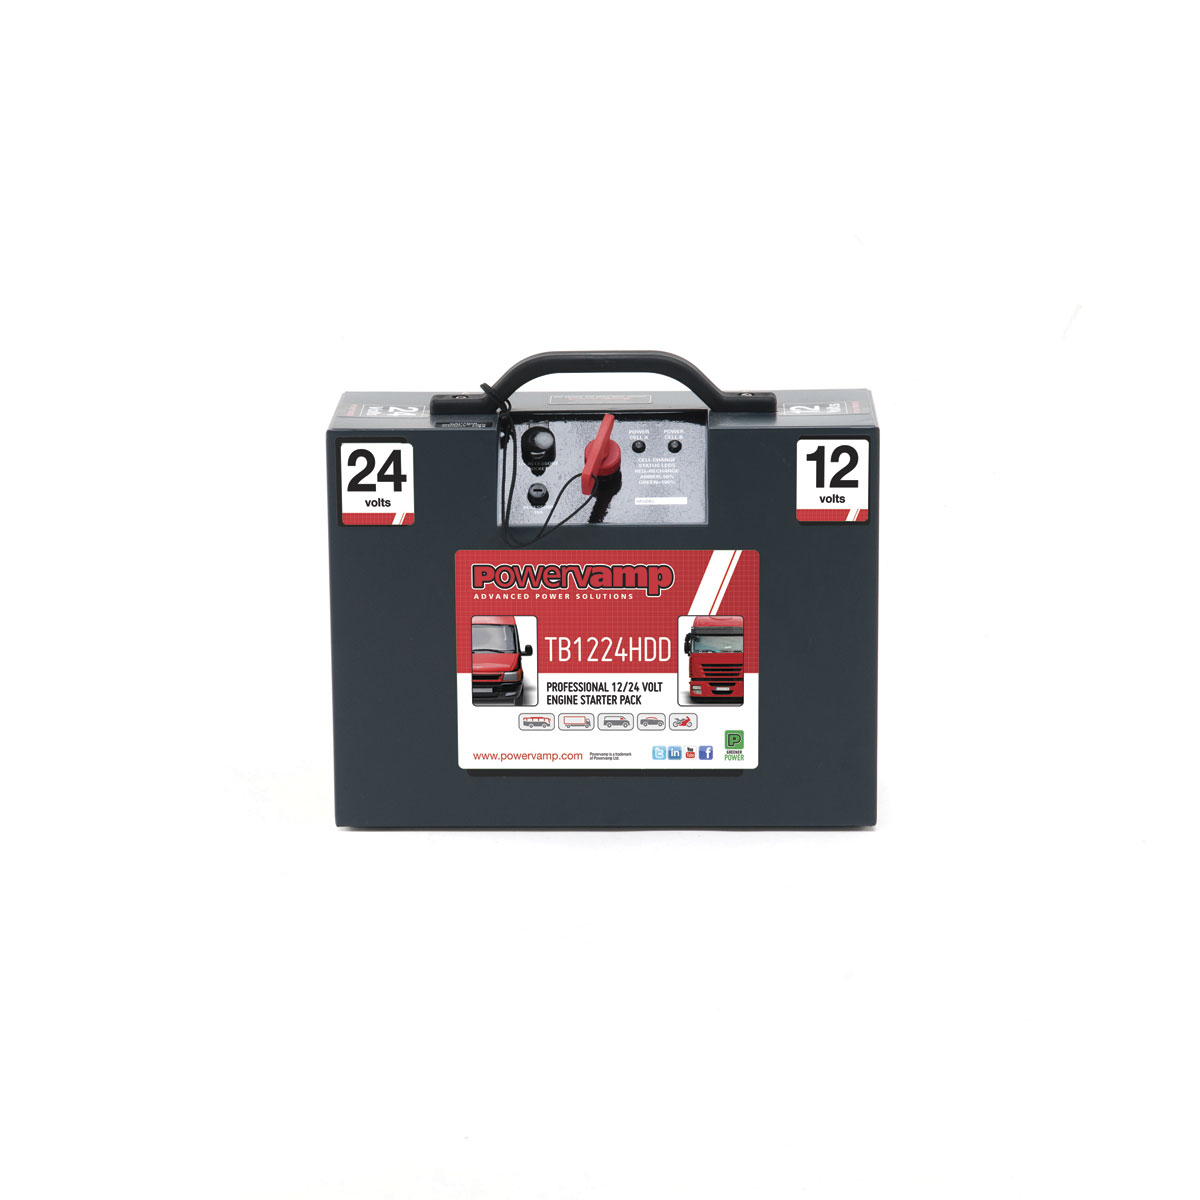 Powervamp's TB1224HDD battery starter.